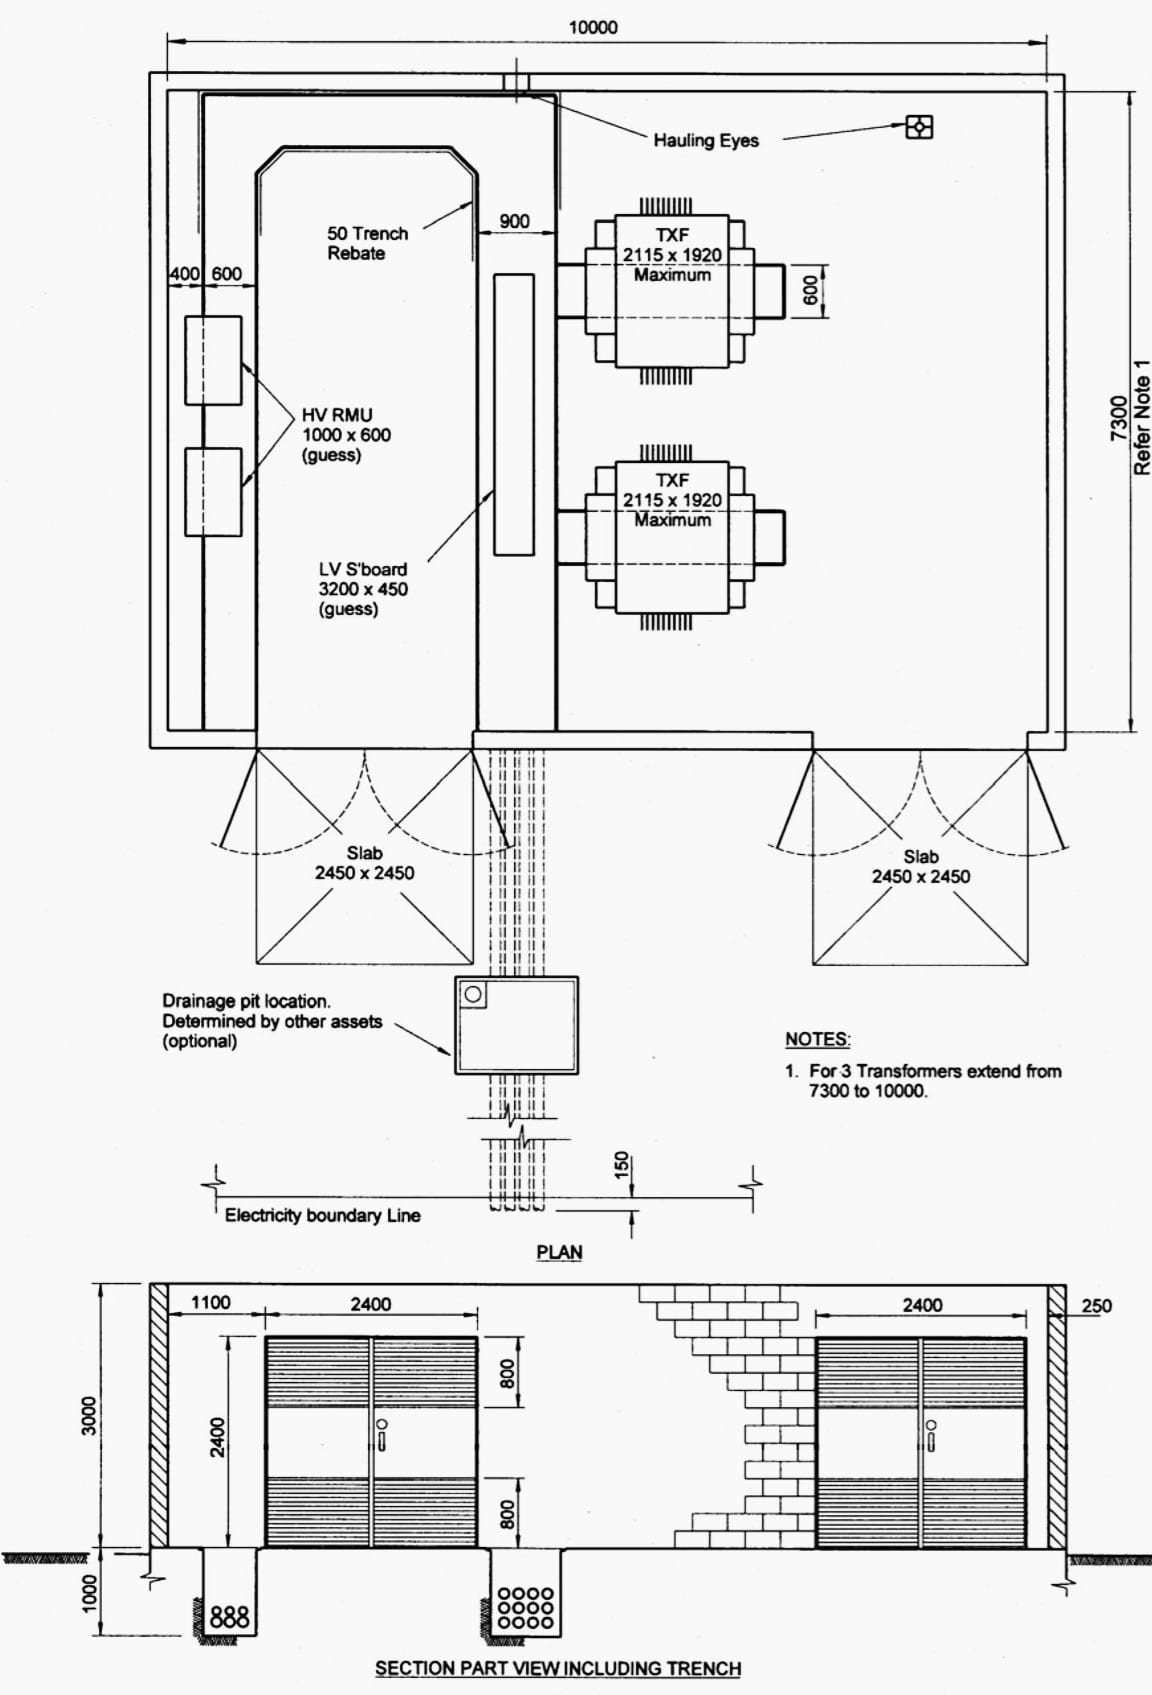 electrical plan drawings